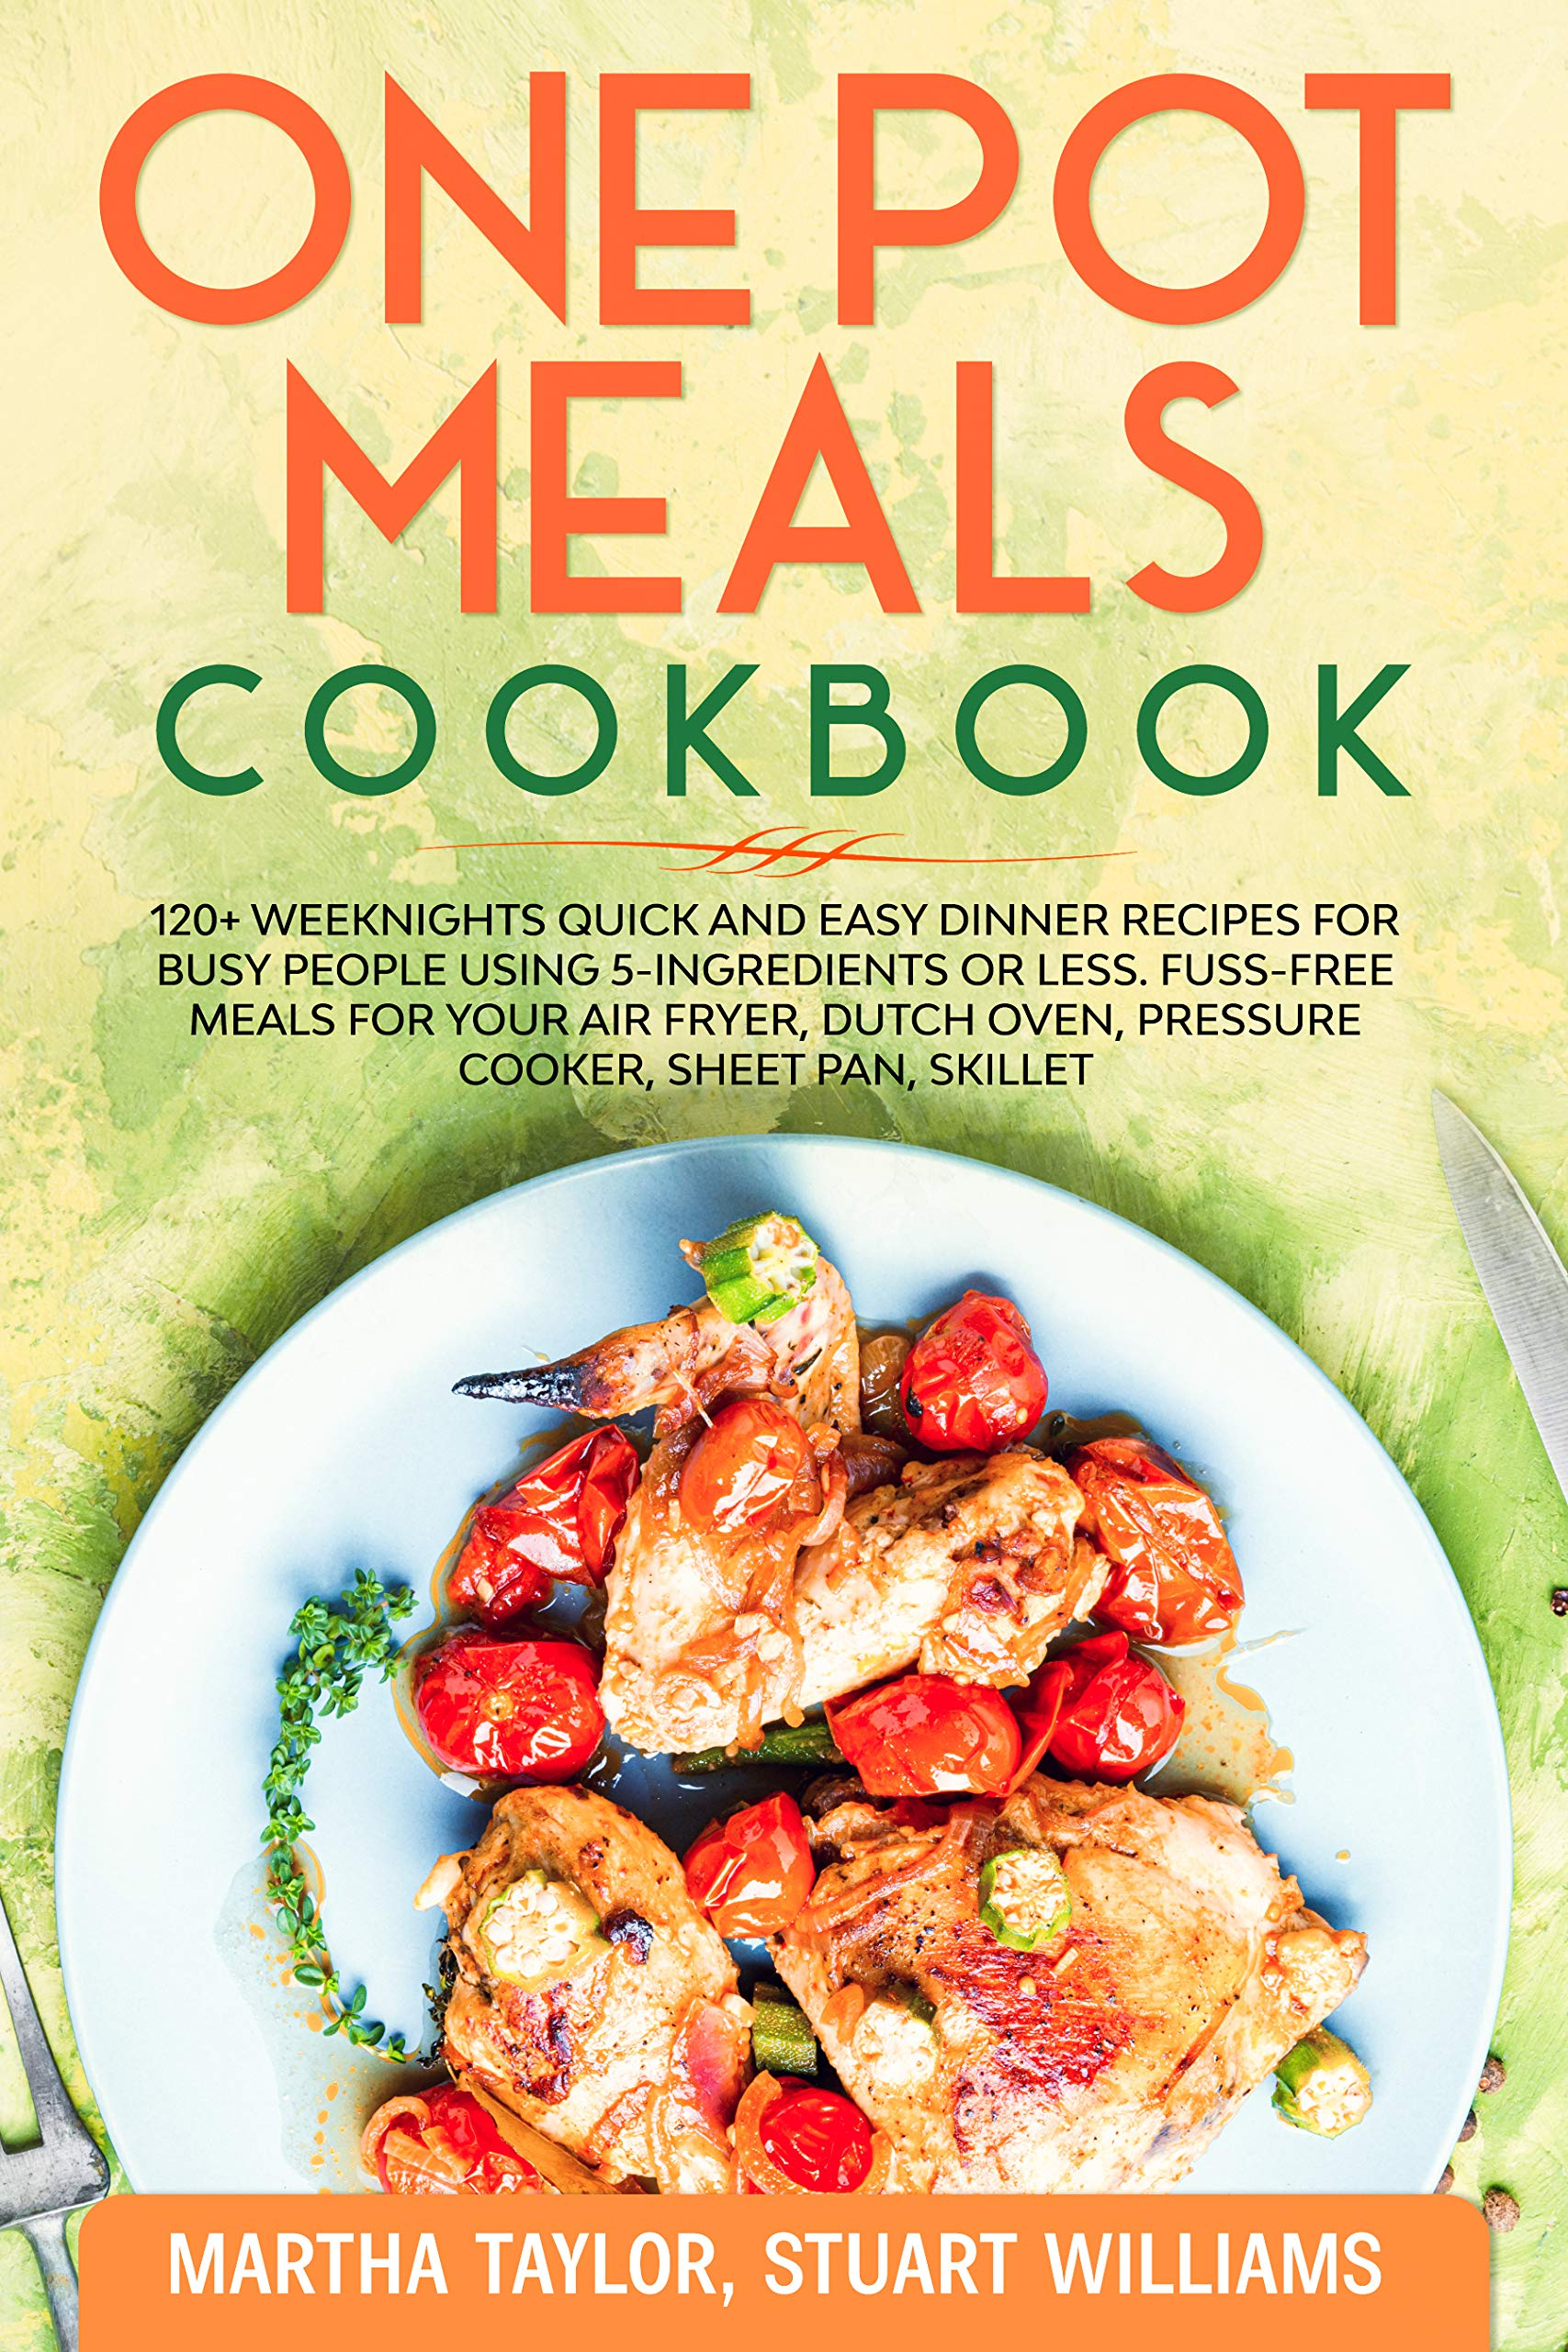 One pot meals cookbook: 120+ Weeknights Quick and Easy Dinner Recipes for Busy People using 5-Ingredients or less. Fuss-Free Meals for Your Air fryer, Dutch oven, Pressure cooker, Sheet pan, skillet